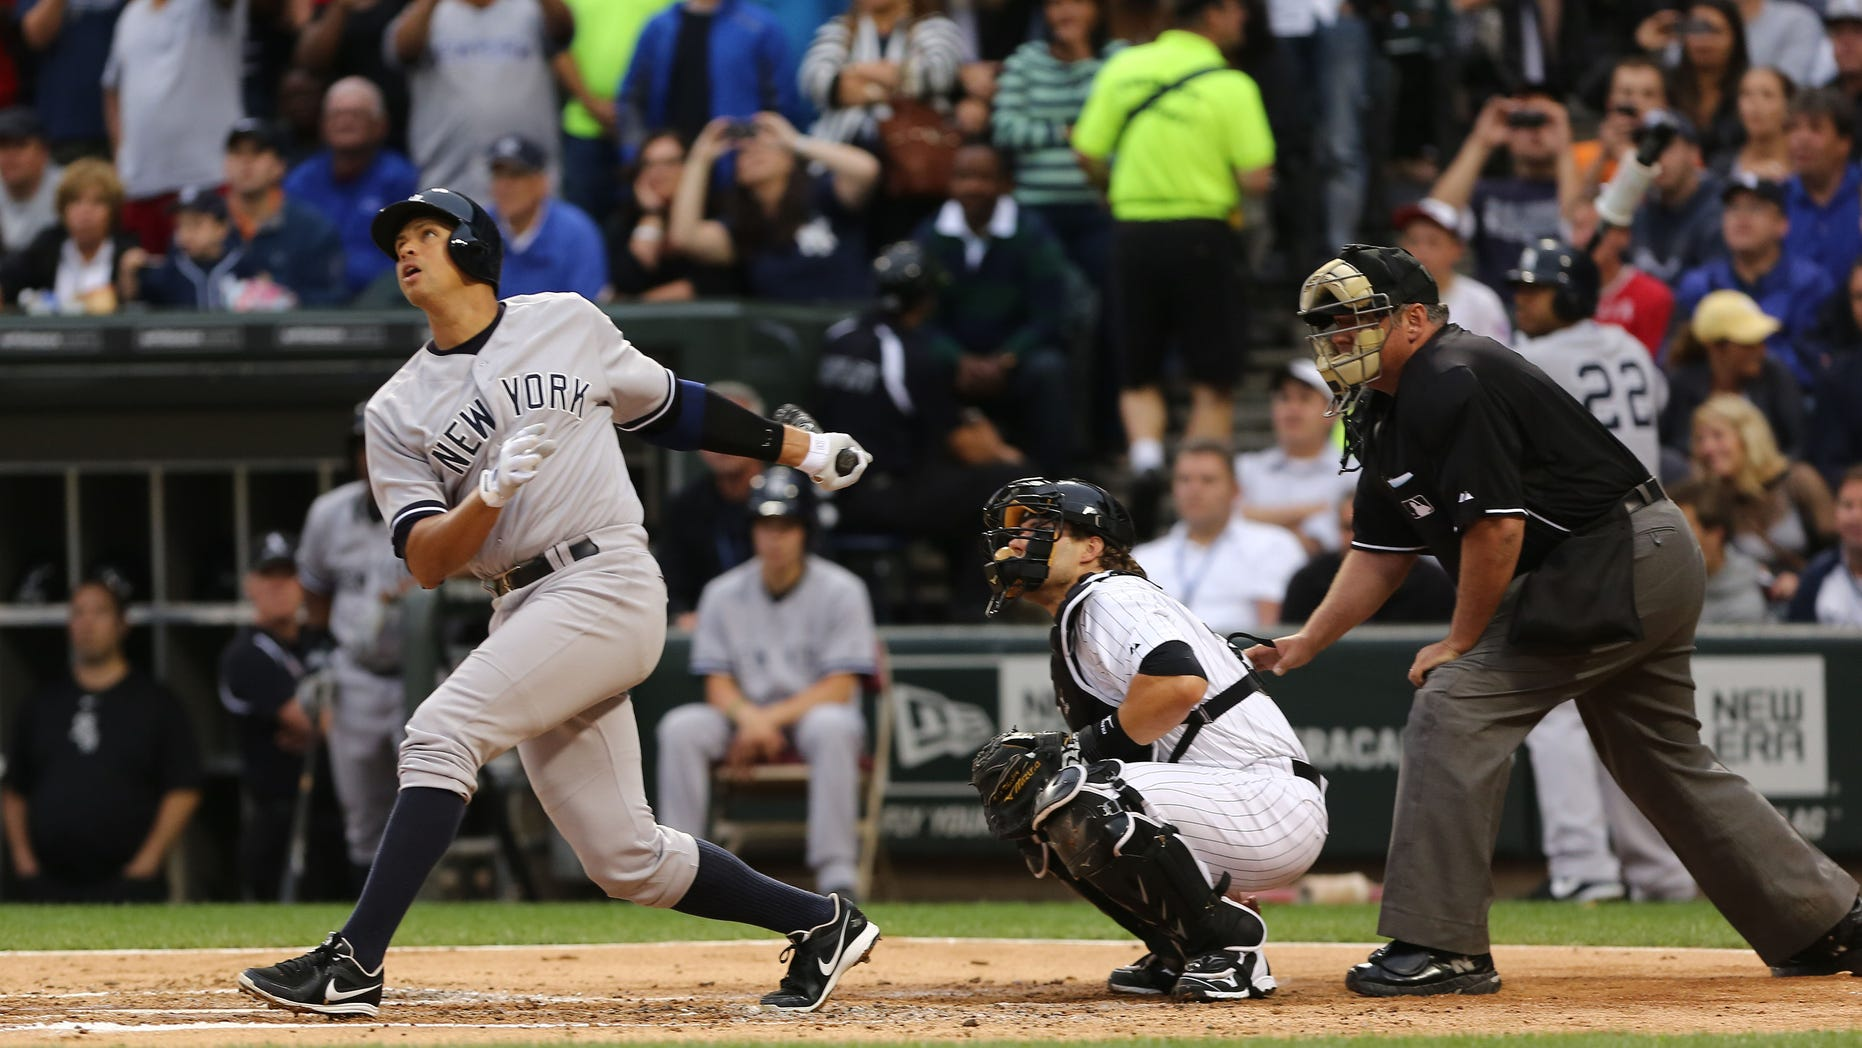 New York Yankees' Alex Rodriguez, left, gets a hit in his first at bat against the Chicago White Sox in the first inning in a baseball game at US Cellular Field, Monday, Aug. 5, 2013,  in Chicago. He was suspended through 2014 when Major League Baseball disciplined 13 players in a drug case, the most sweeping punishment since the Black Sox scandal nearly a century ago. (AP Photo/Charles Cherney)